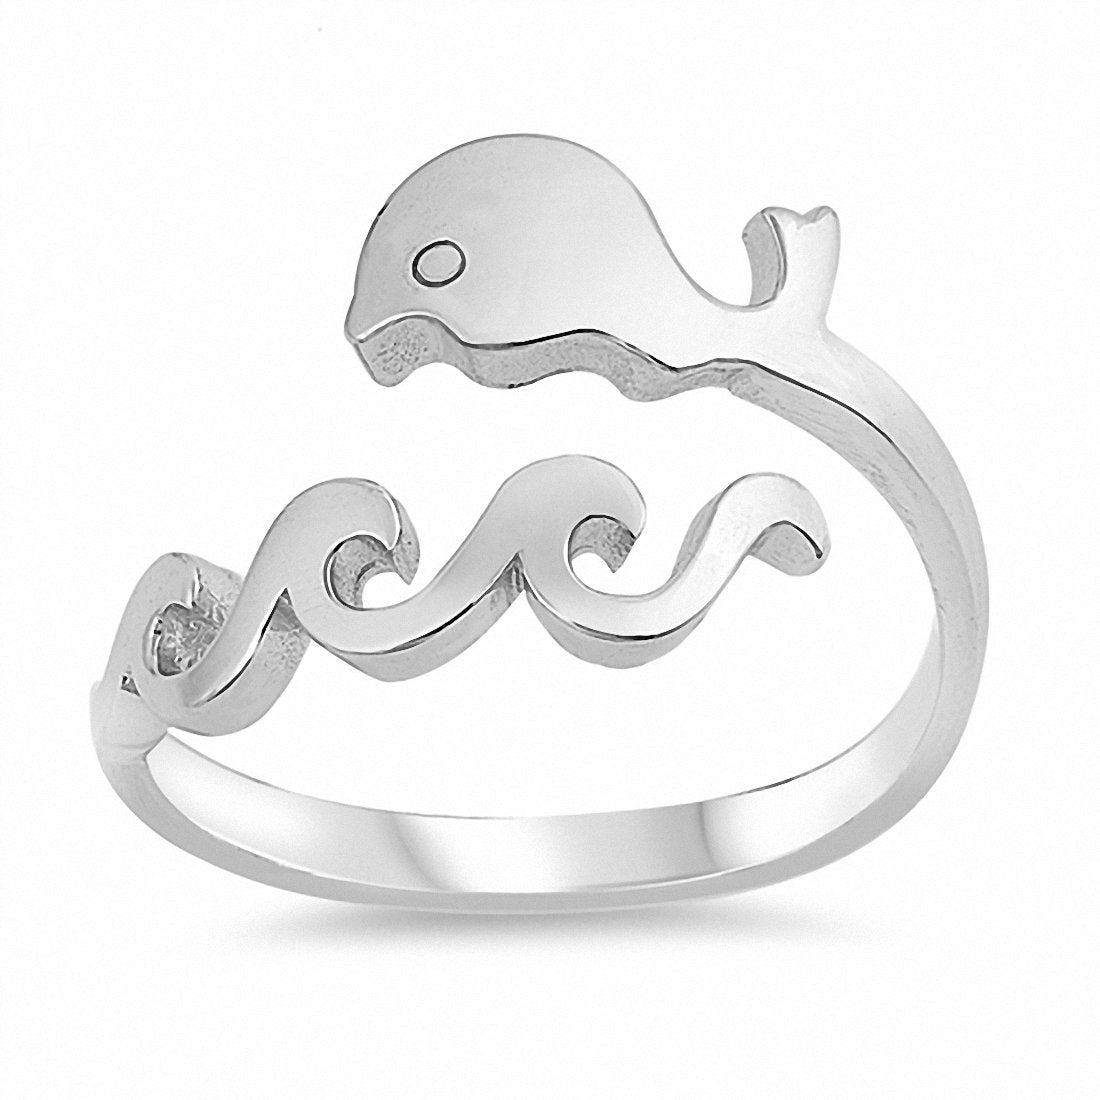 Wave and Whale Ring Band 925 Sterling Silver Choose Color